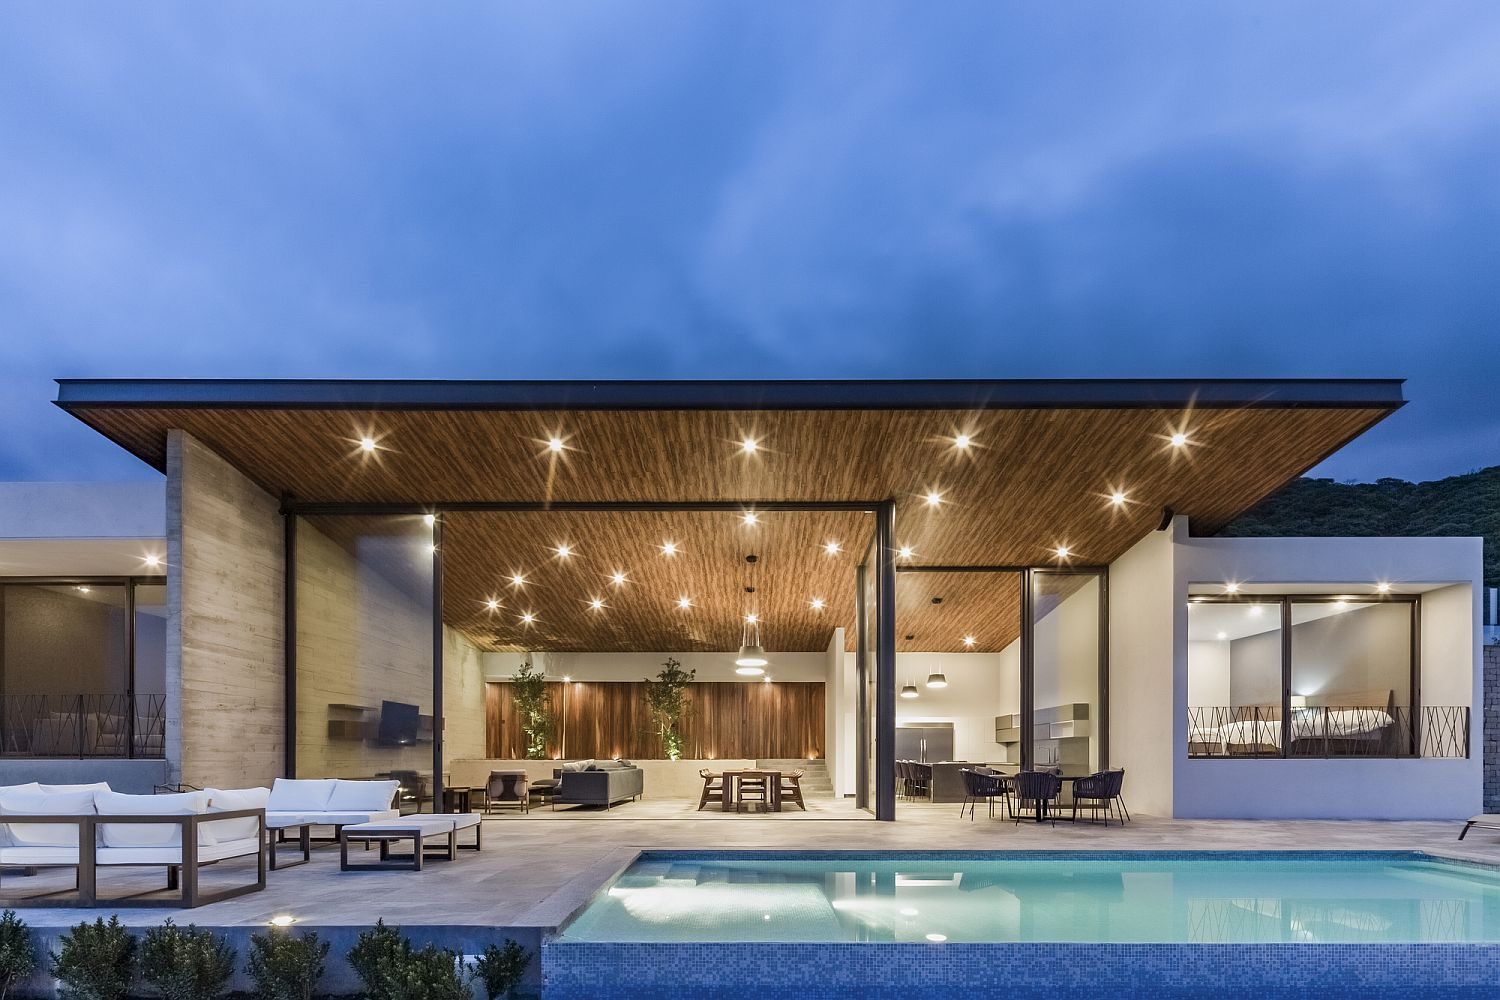 Overhang of the home offers ample natural shade along with cool lighting after sunset